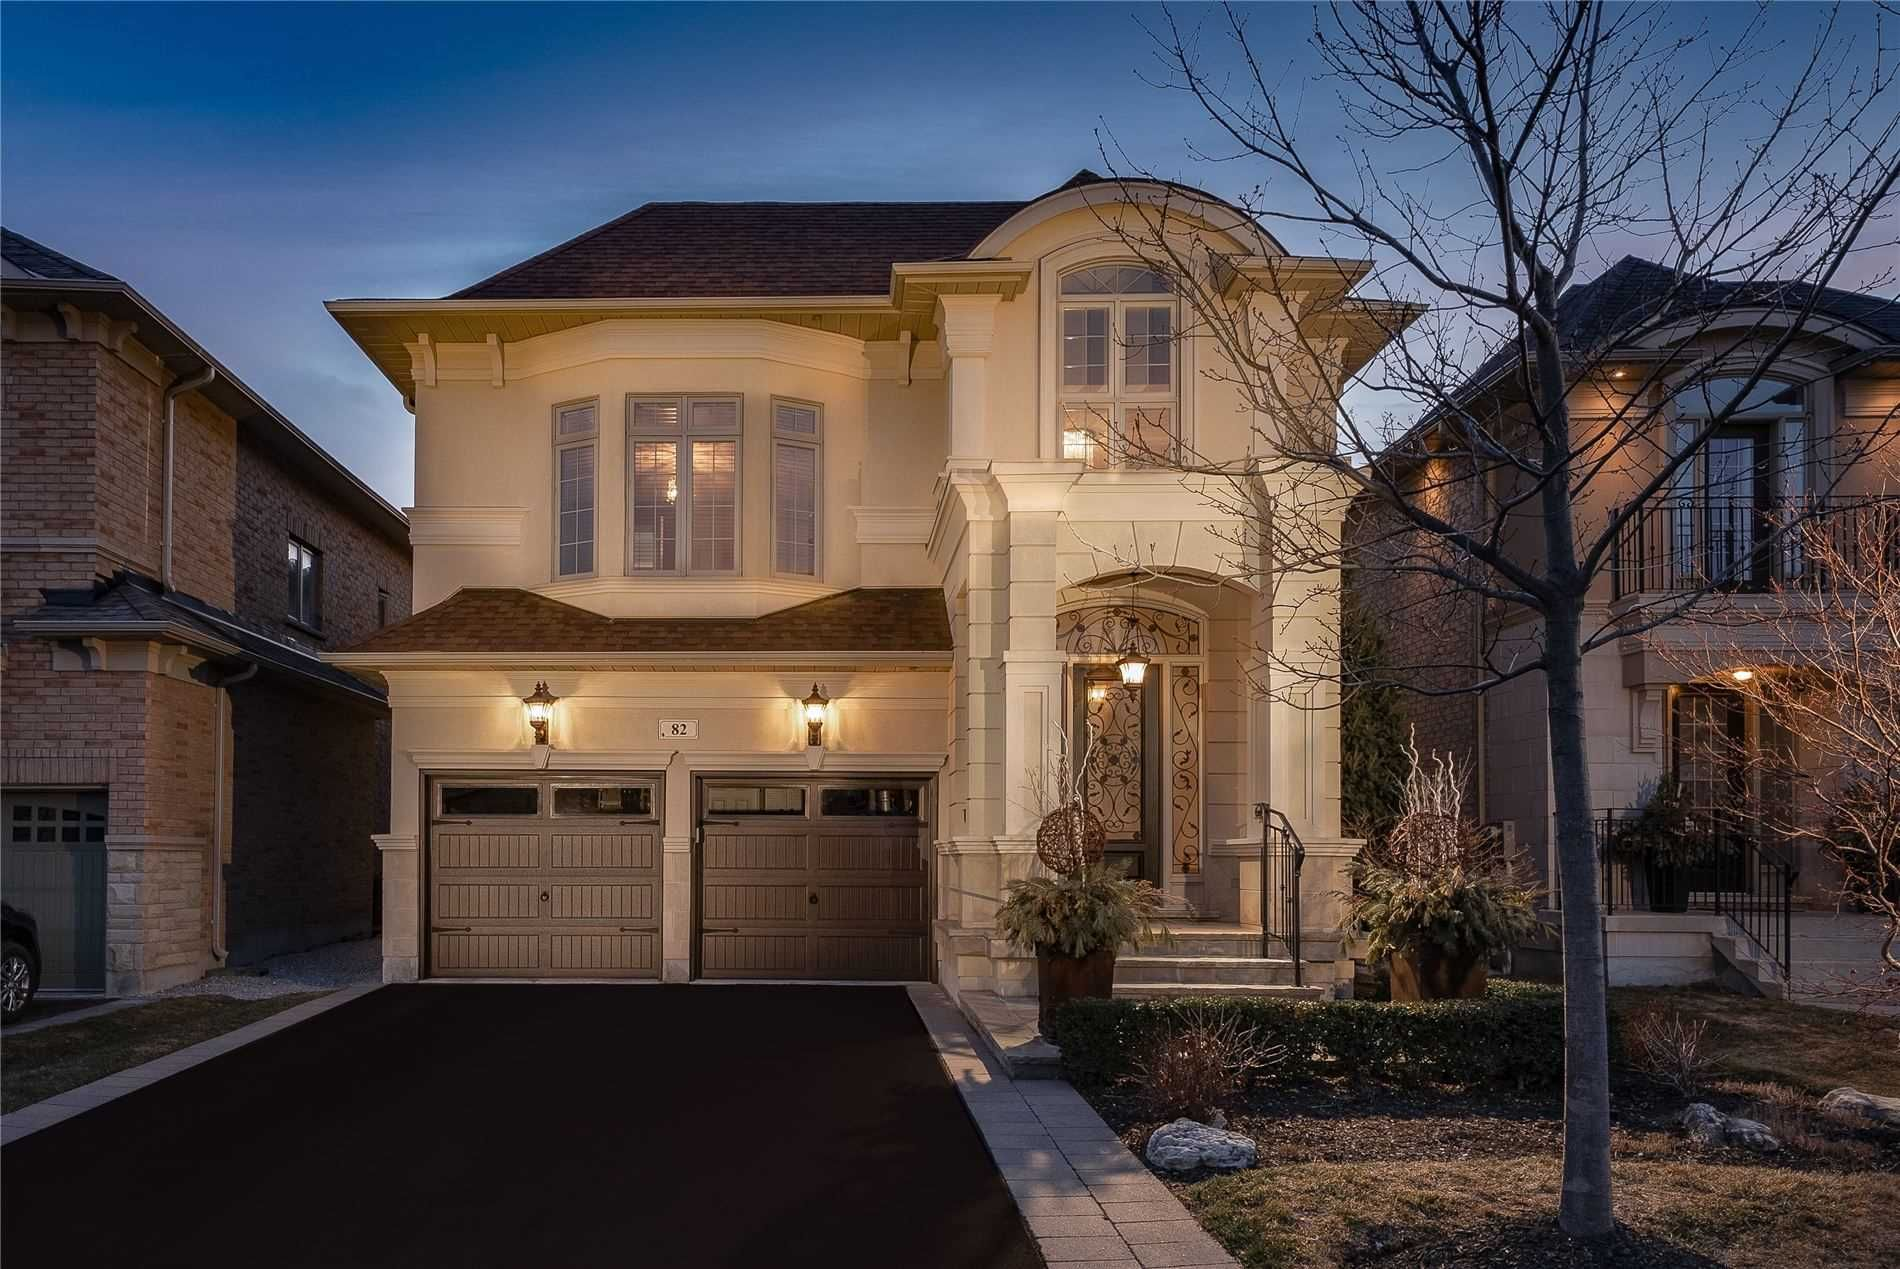 Main Photo: 82 Trammel Dr in Vaughan: Vellore Village Freehold for sale : MLS®# N5161339